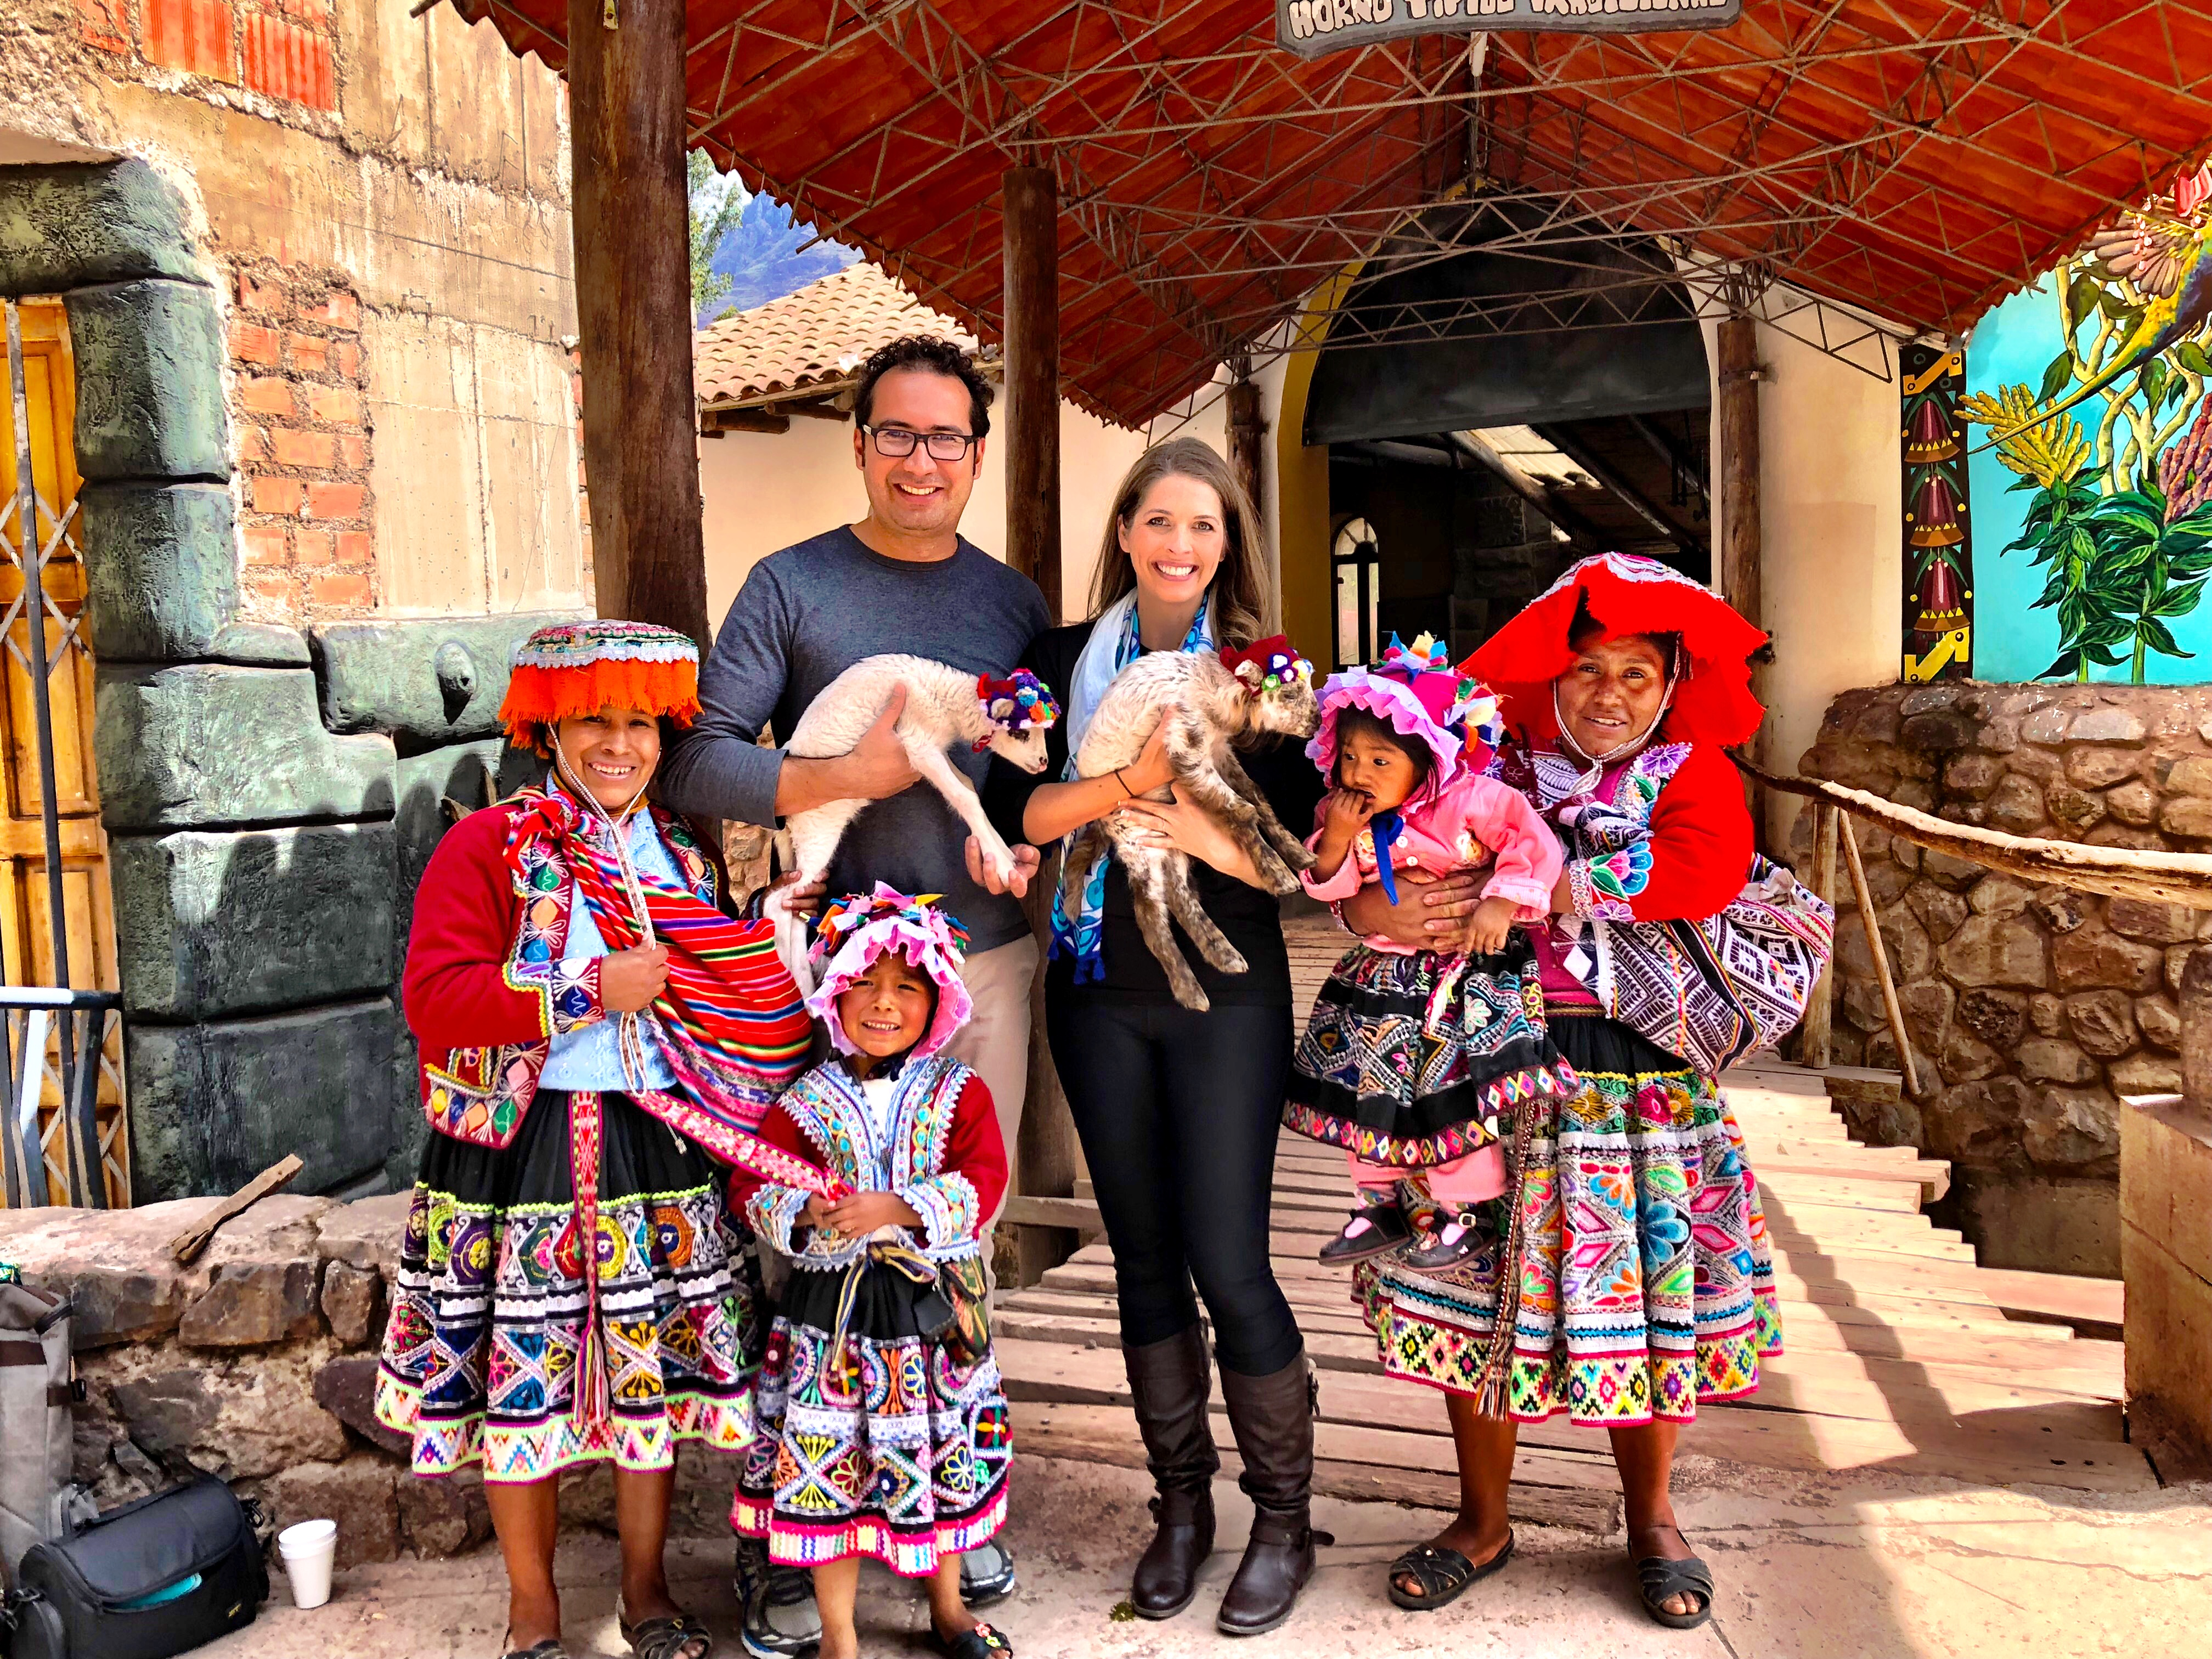 Posing with a Peruvian Family in Pisac Market